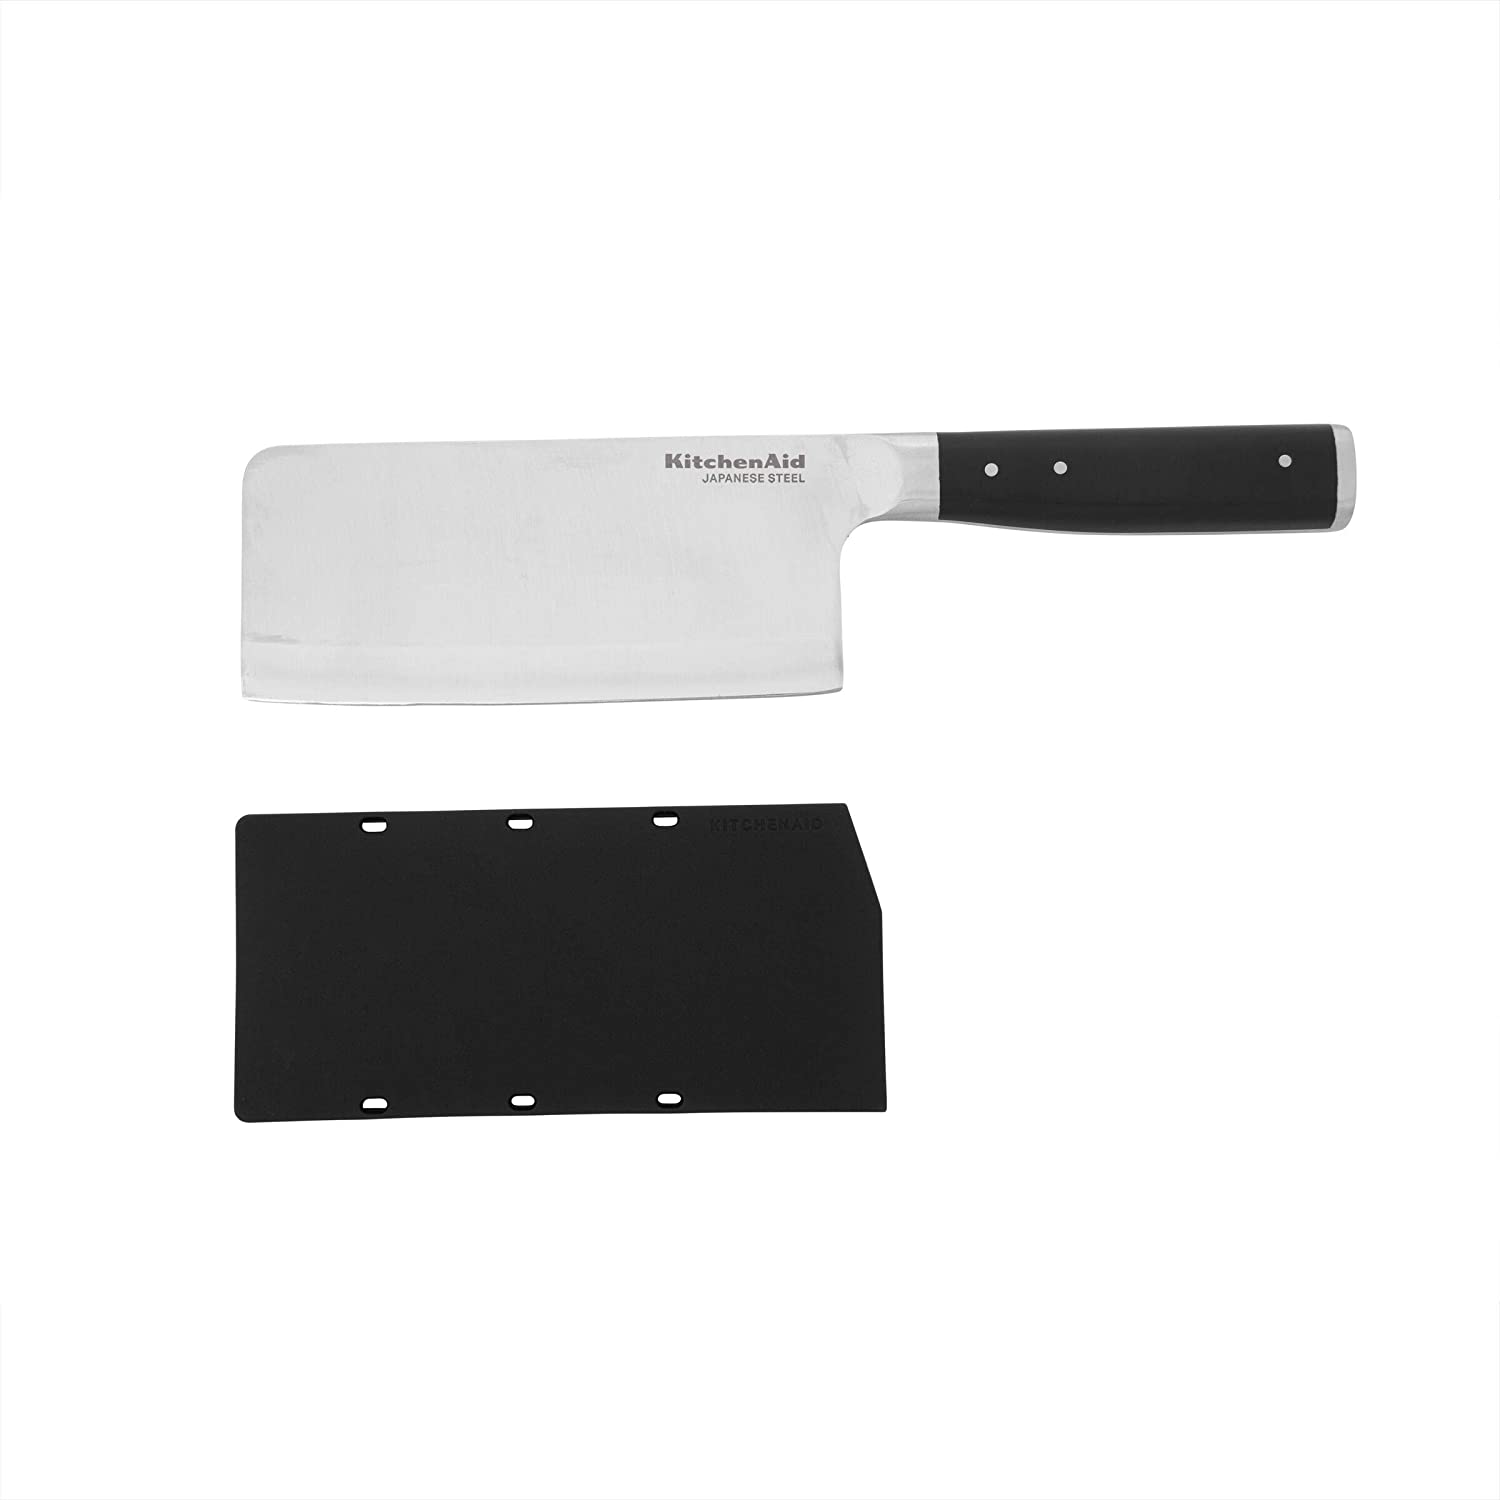 KitchenAid Gourmet Forged Cleaver Knife, 6-Inch, Black